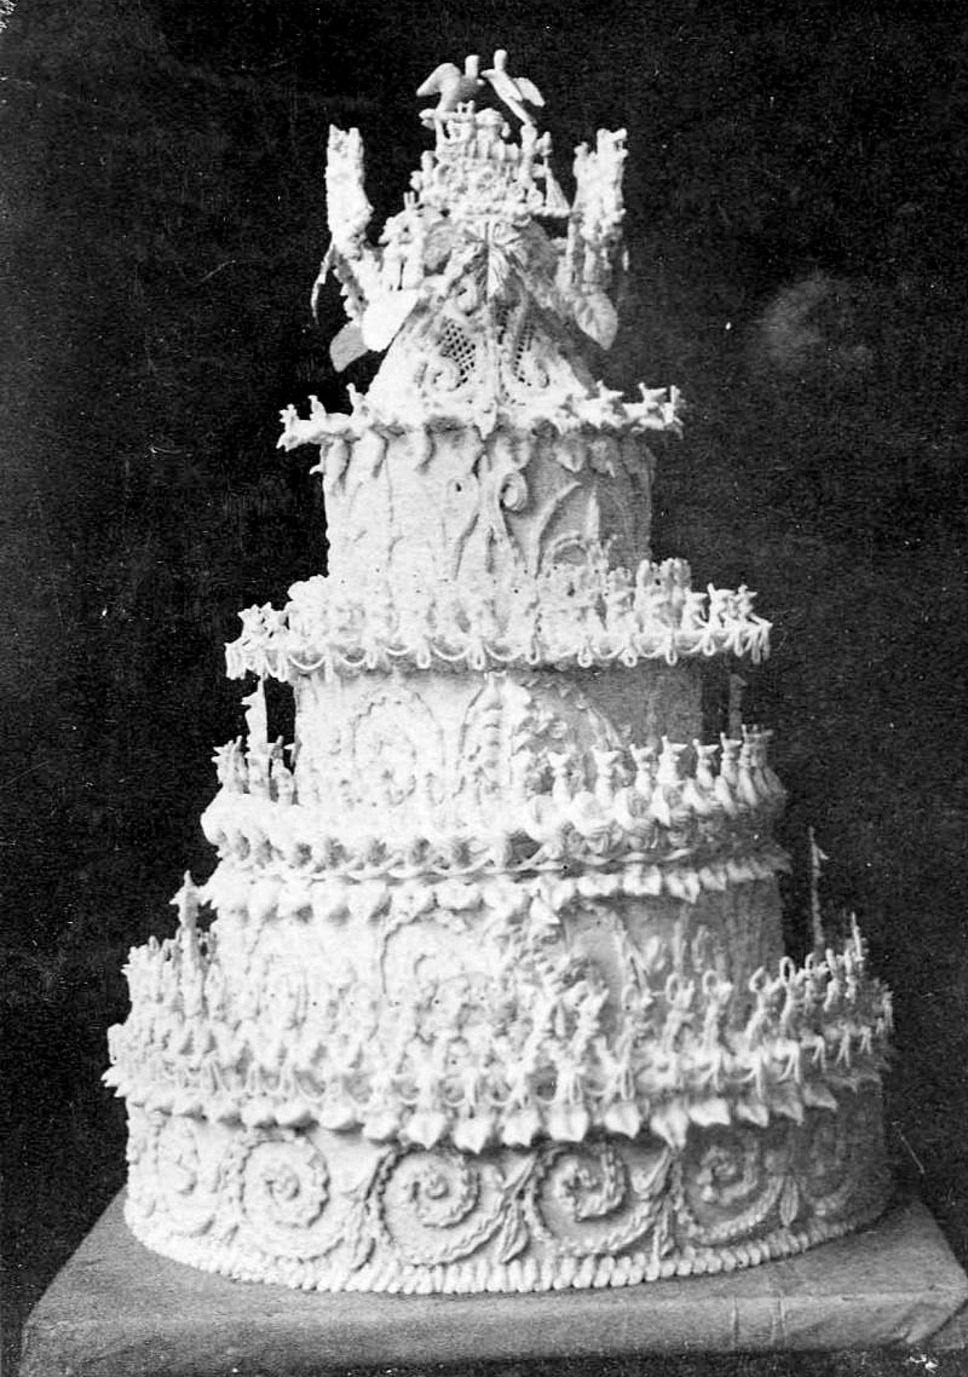 This Is The Wedding Cake Of George And Eliza Garrick Reid In 1885 Made And Decorated By James Brown Royal Wedding Cake Wedding Cakes Vintage History Of Cake